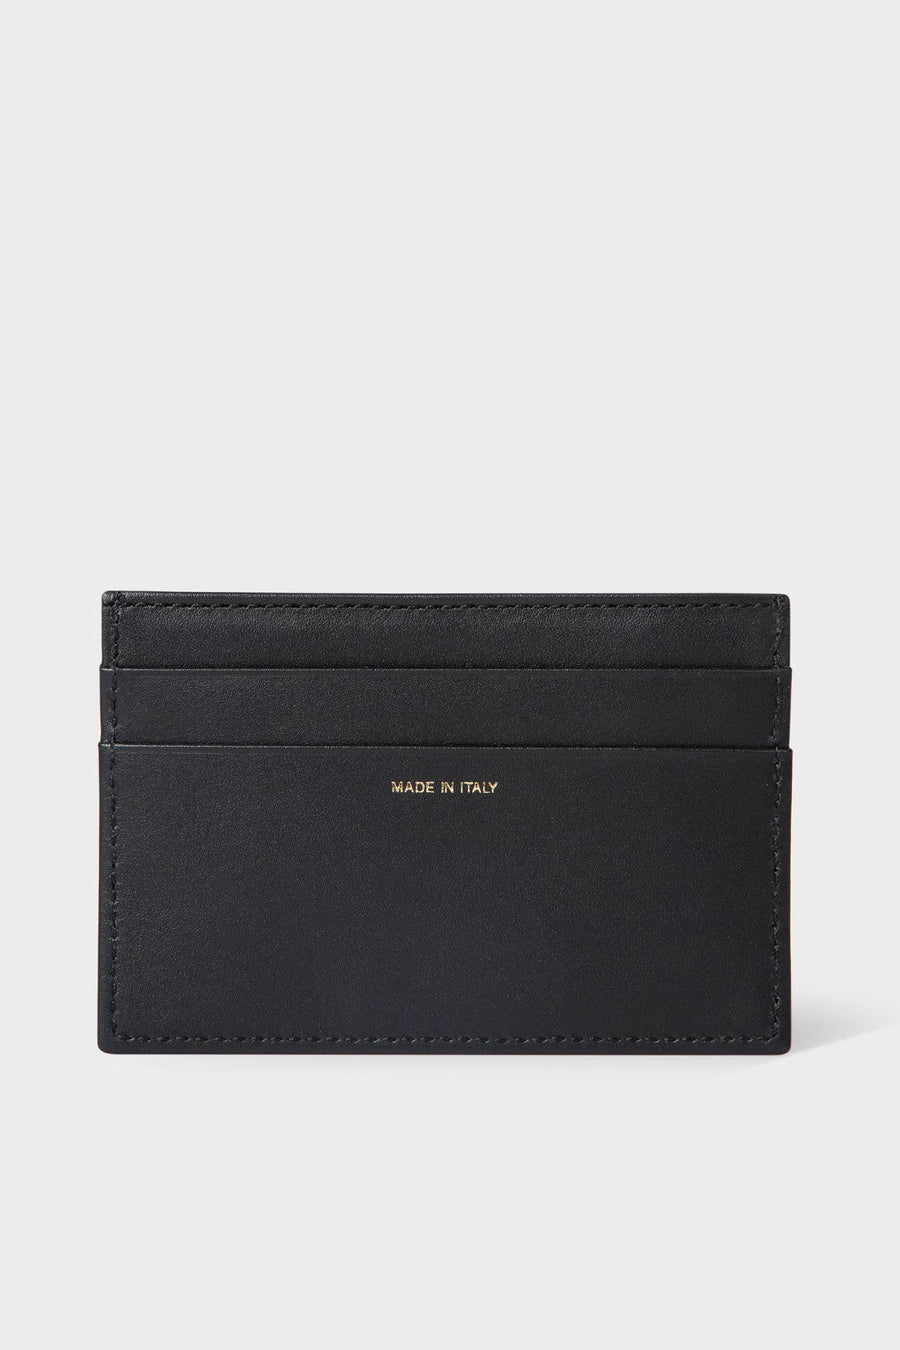 PAUL SMITH WALLET - 4768AMULTI